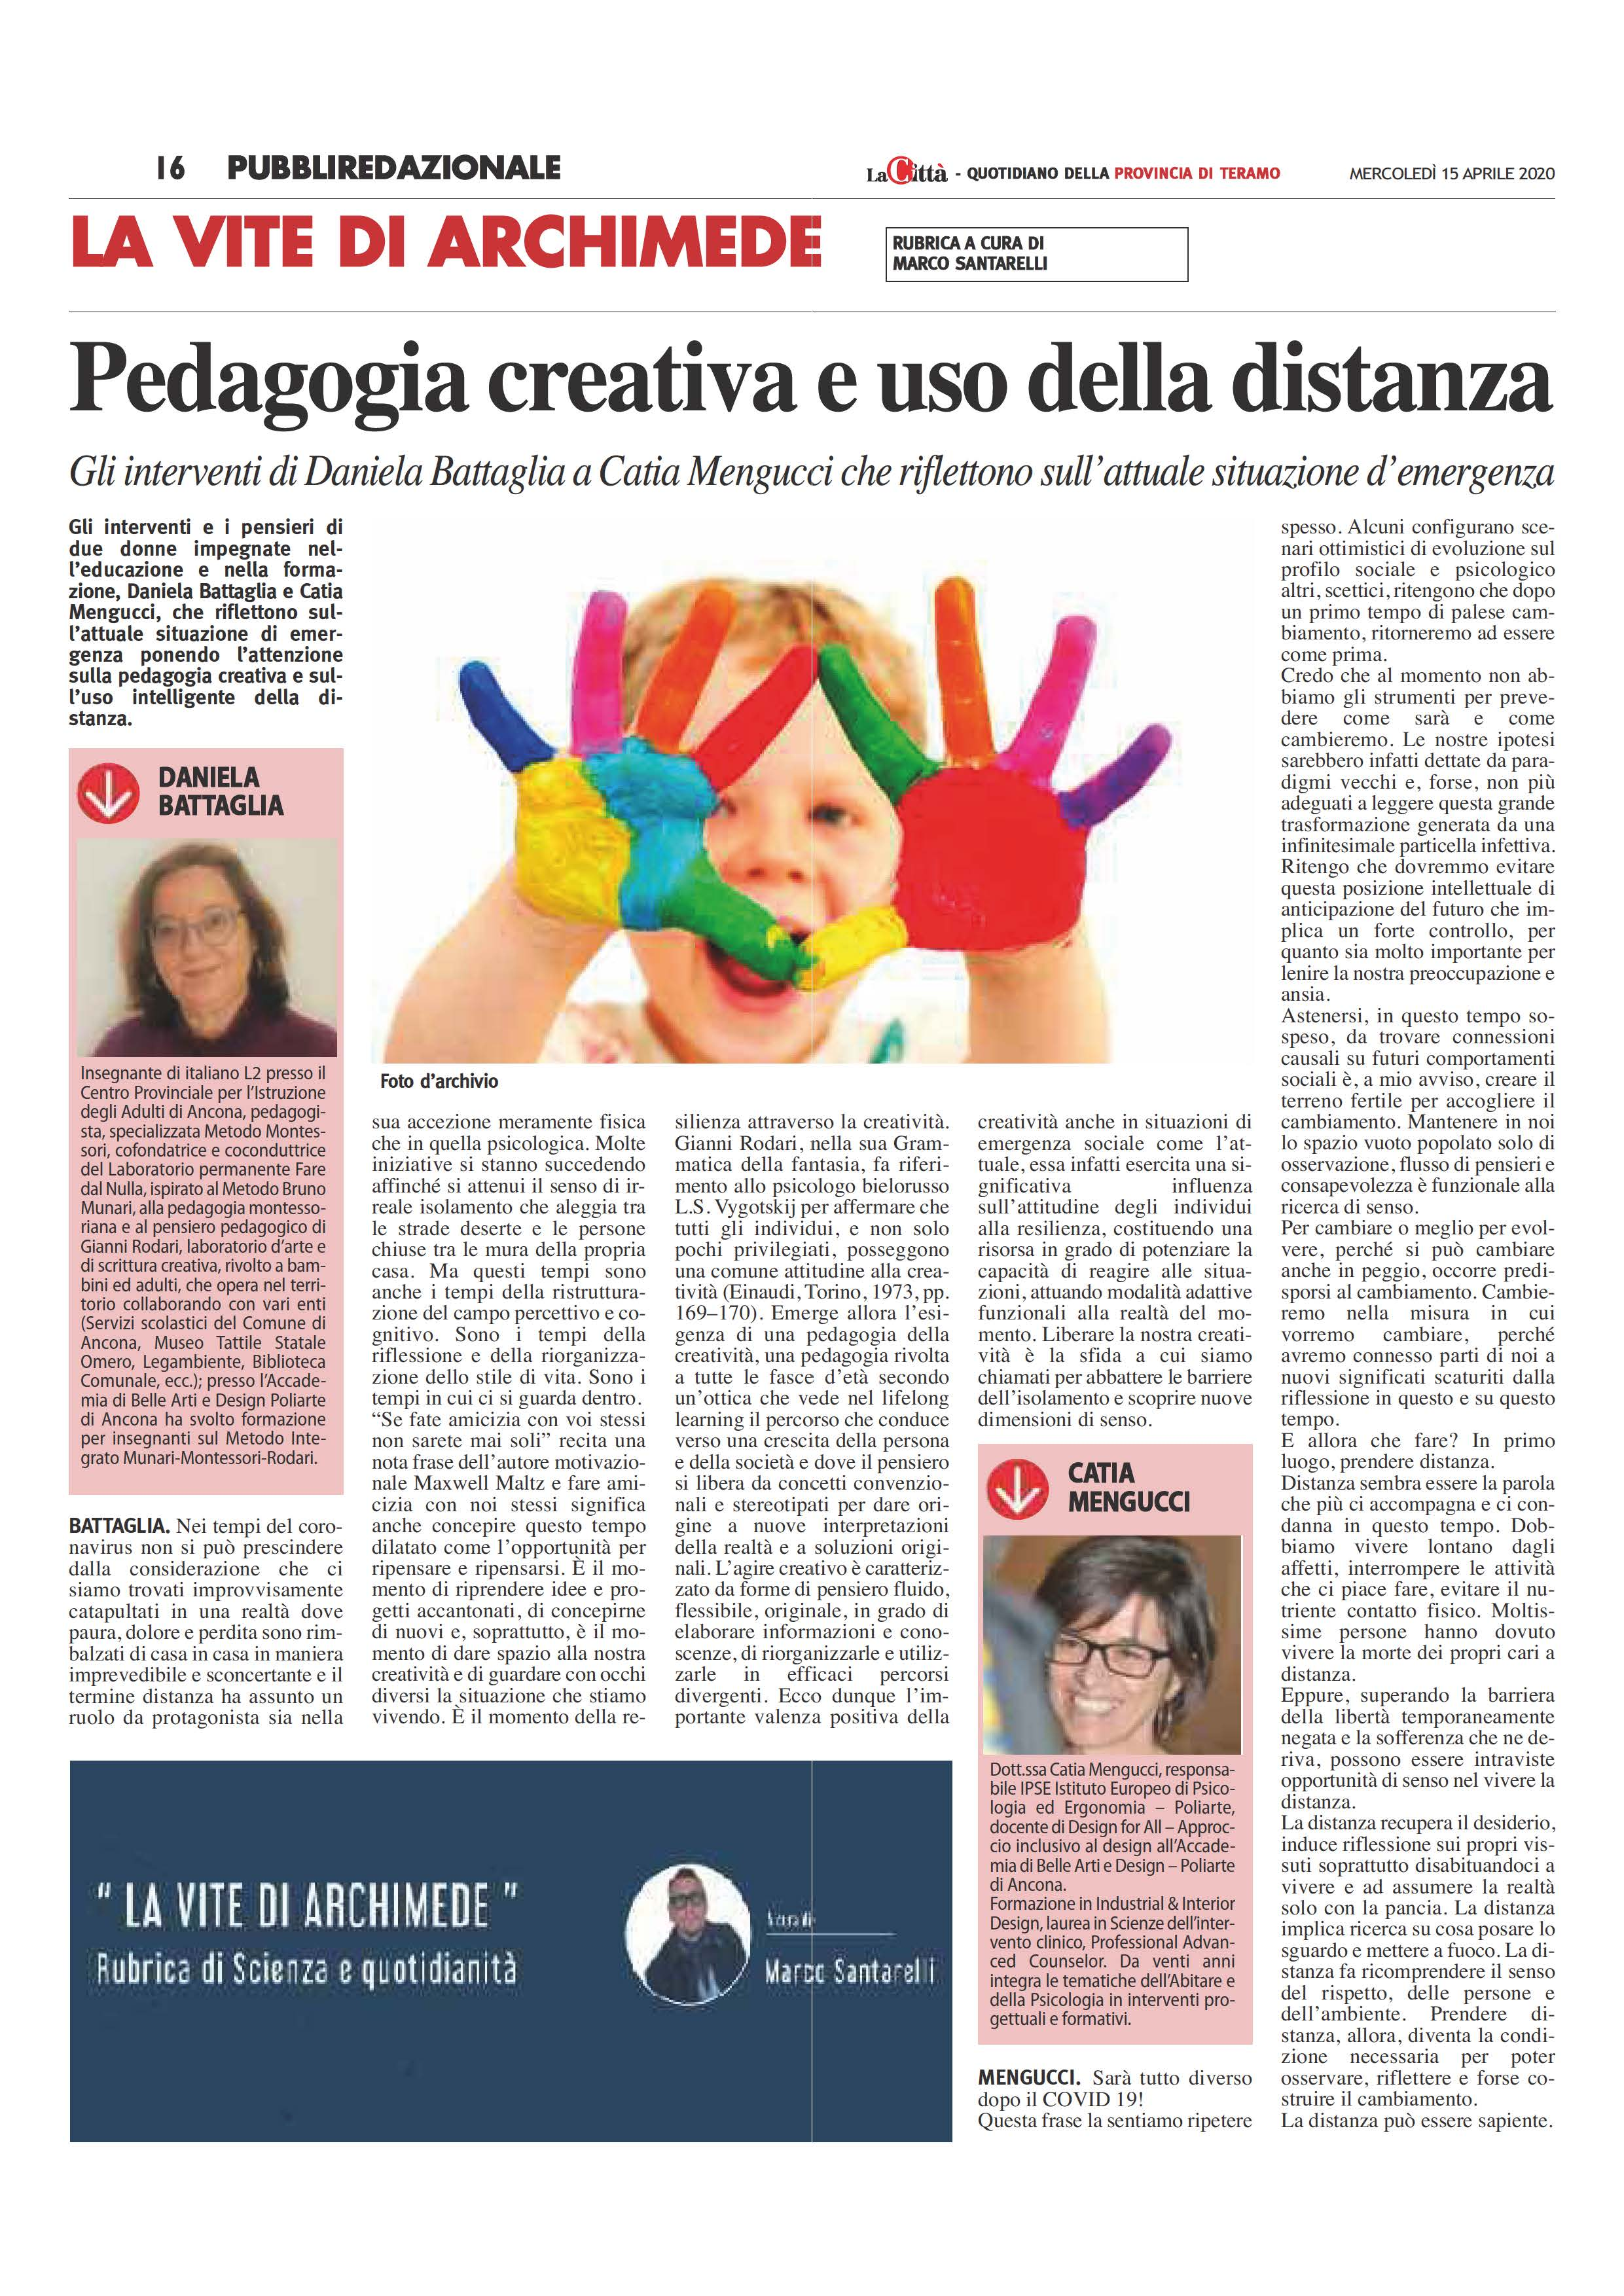 La Citta Quotidiano 15.04.2020